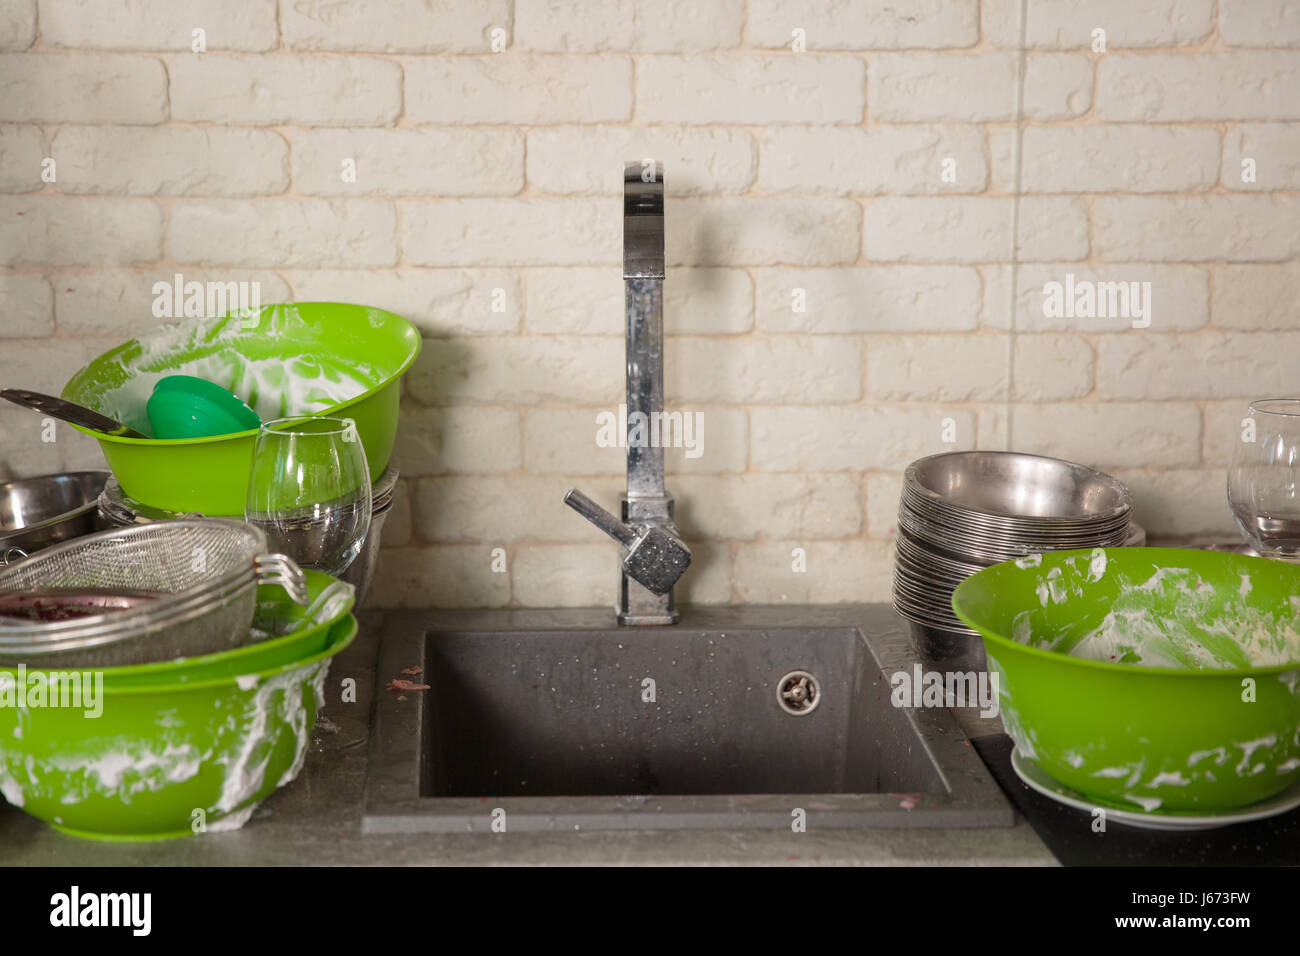 Kitchen utensils need a wash - Stock Image